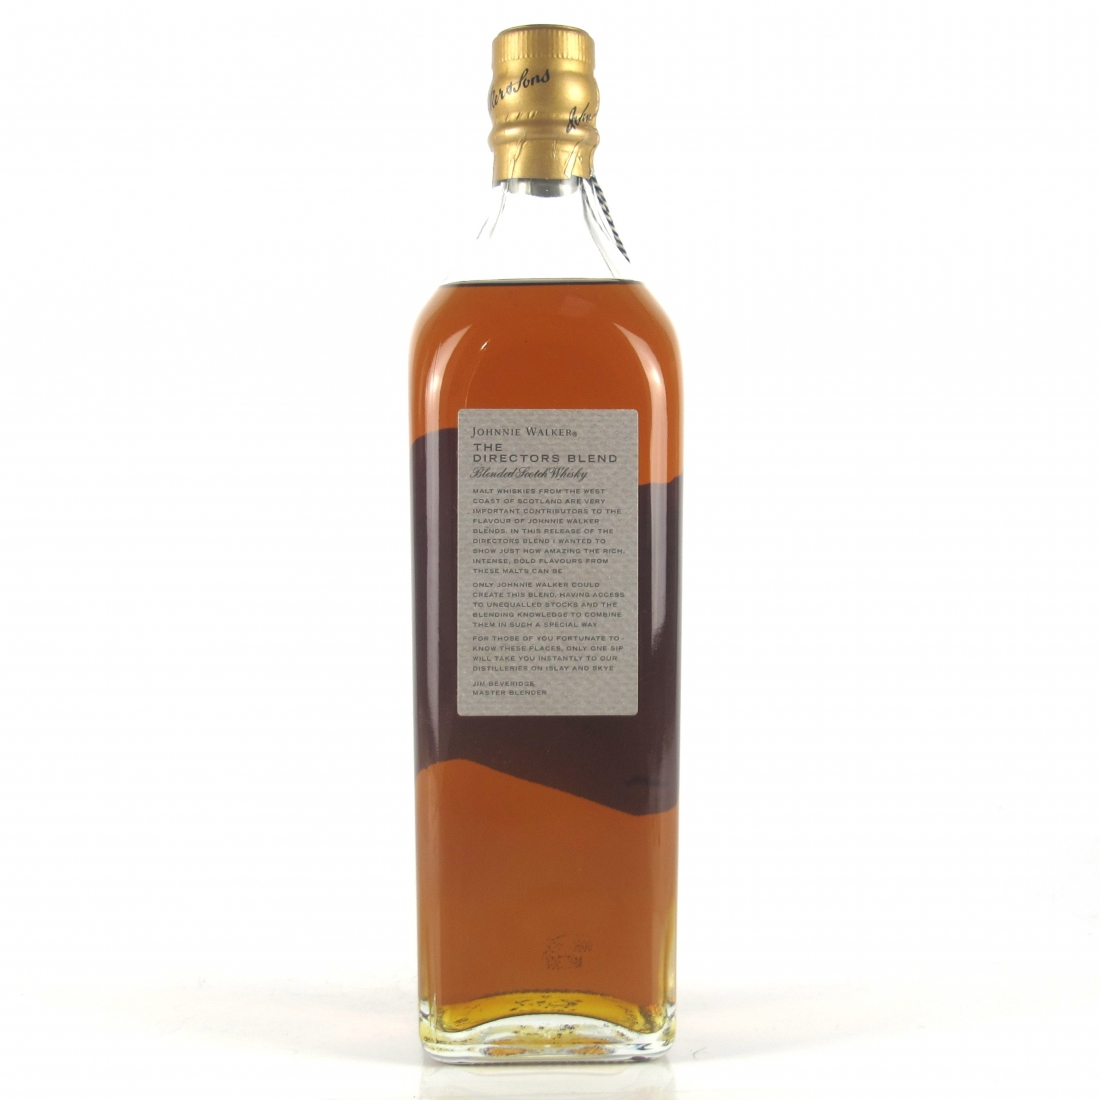 Johnnie Walker The Directors Blend Complete Collection 6 x 70cl